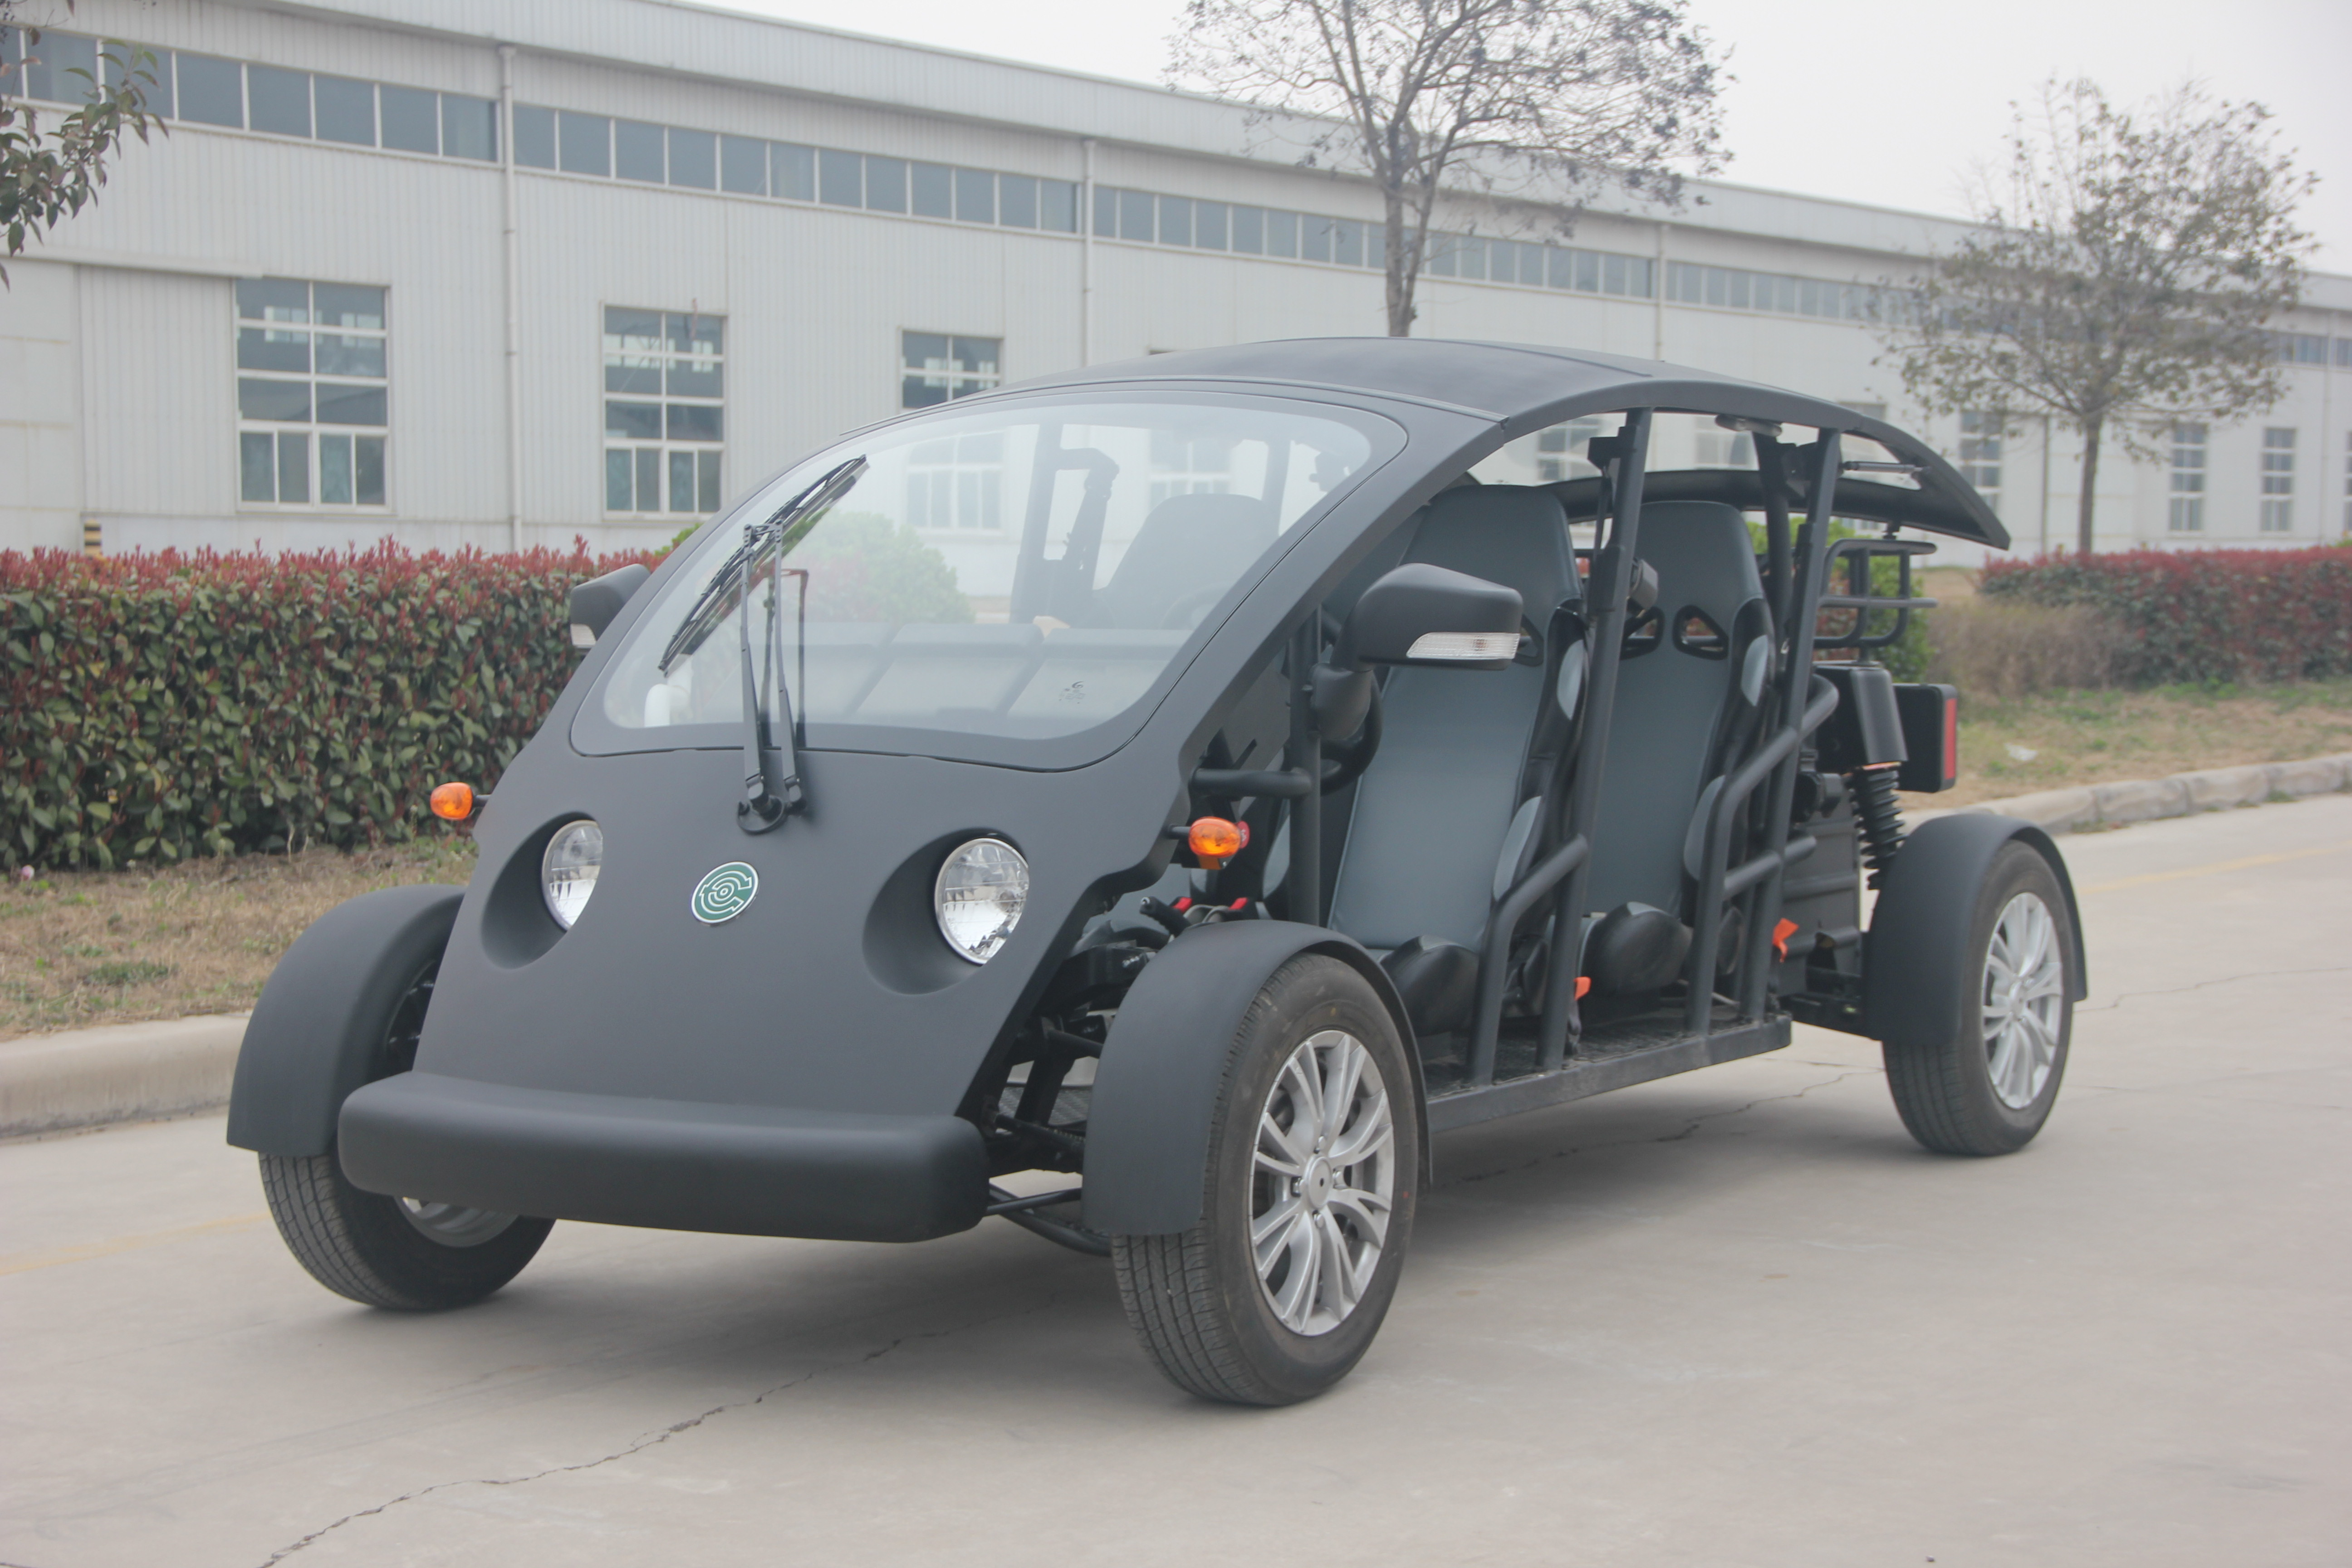 Black 4 Person Custom Electric Golf Cart Utility Vehicle 40KM/H Max Speed